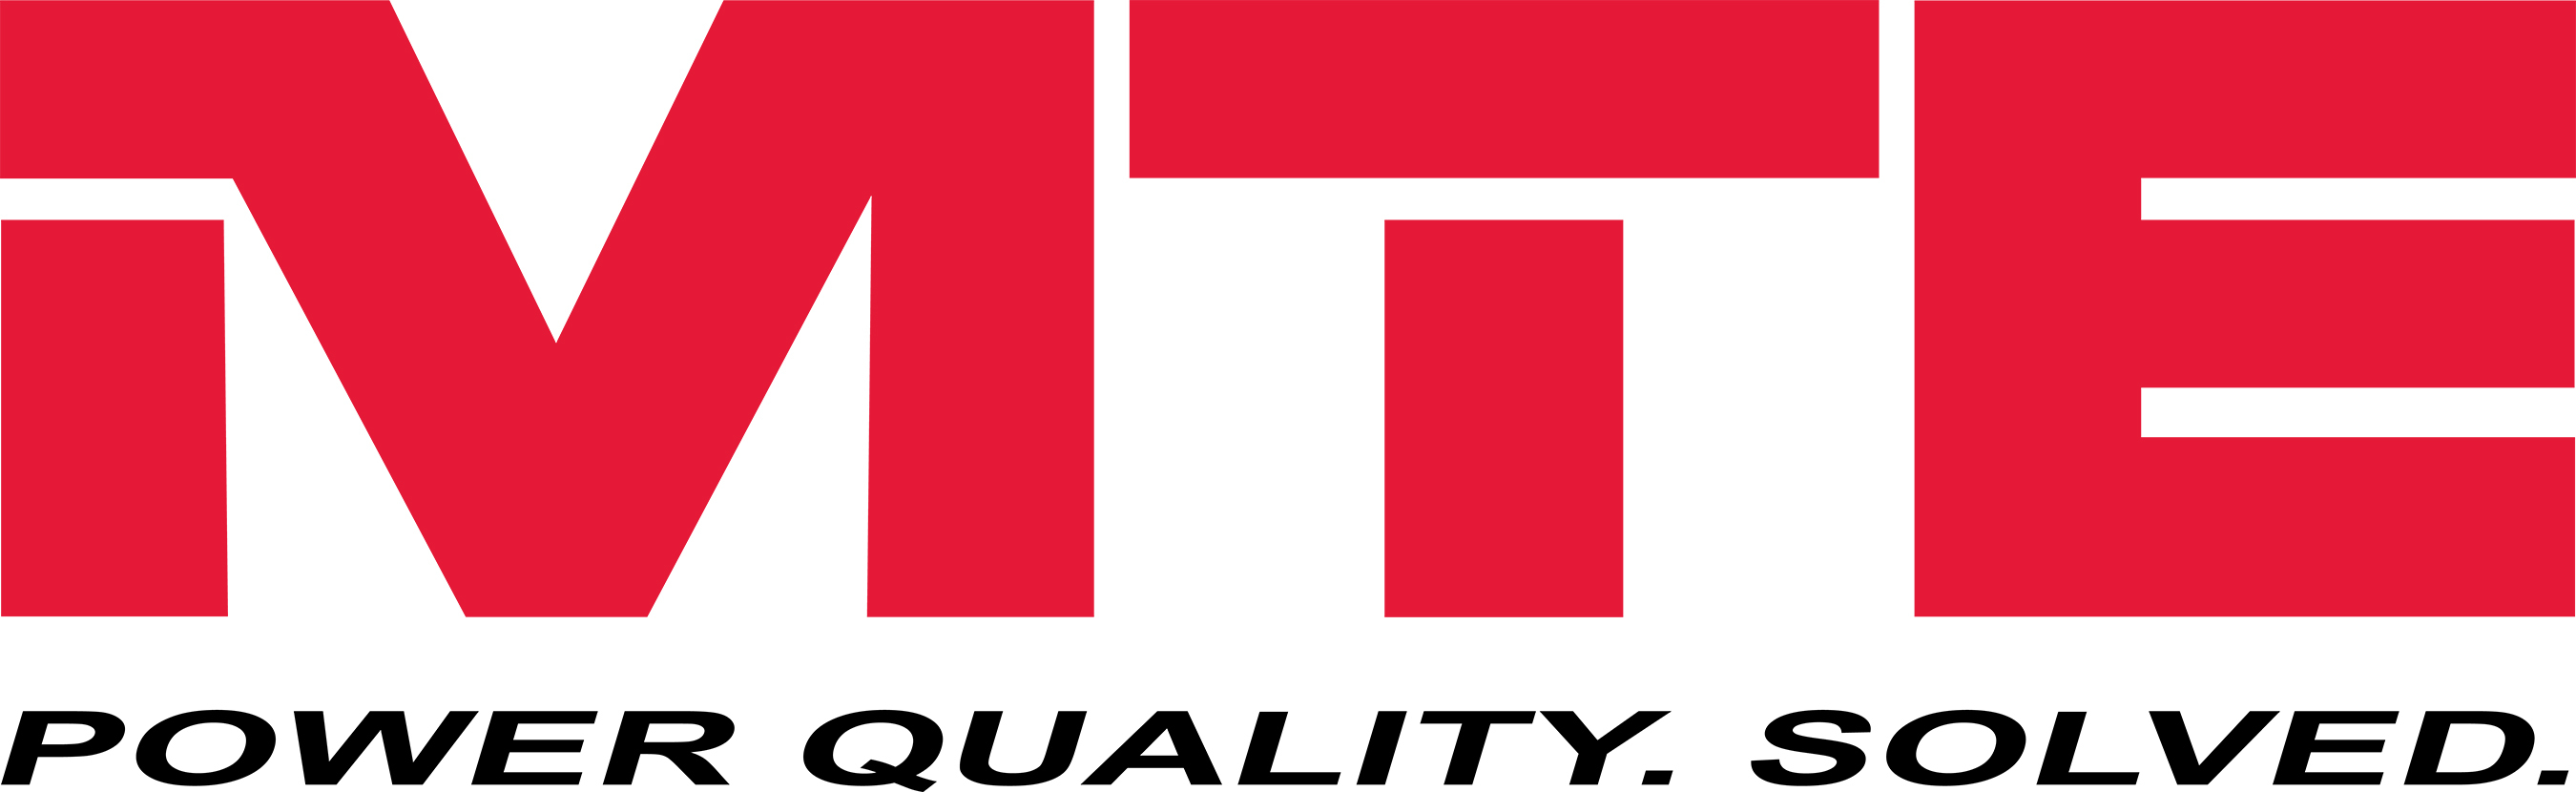 MTE Corporation Launches New Single Phase Harmonic Filter